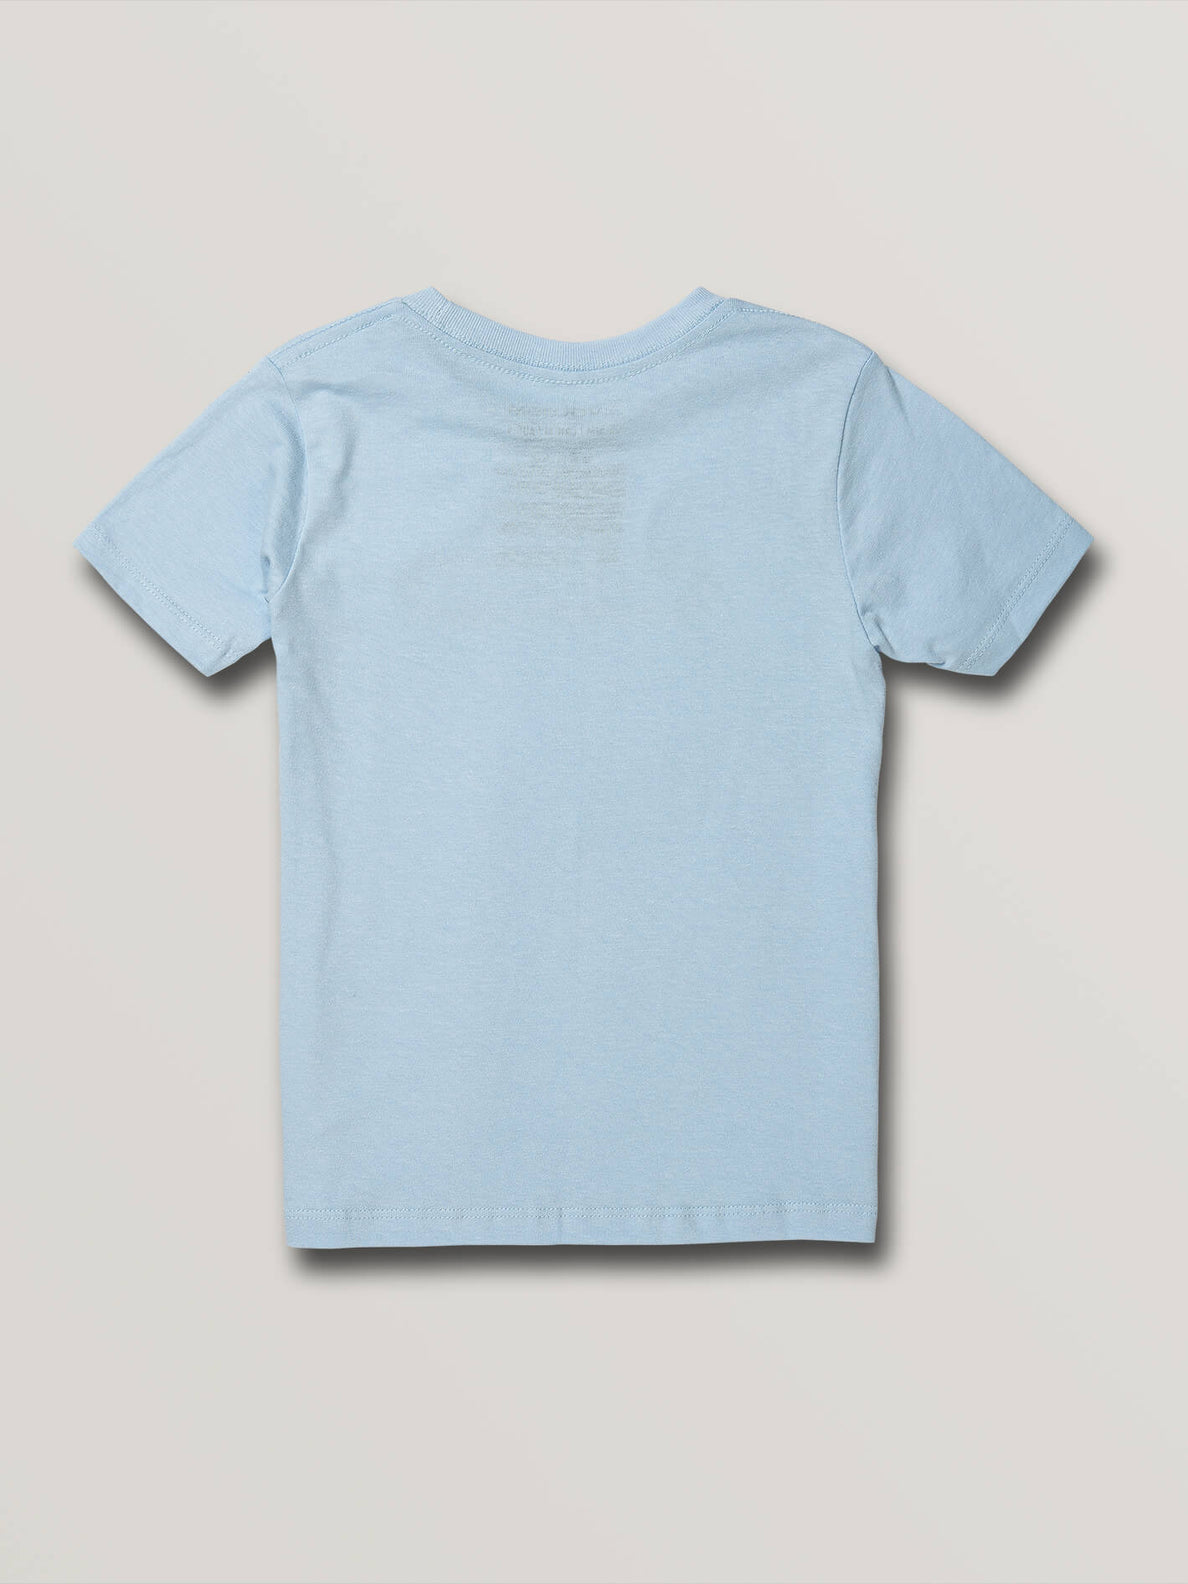 New Euro S/s Tee Yth Ly Powder Blue (Y3512001_PDR) [B]